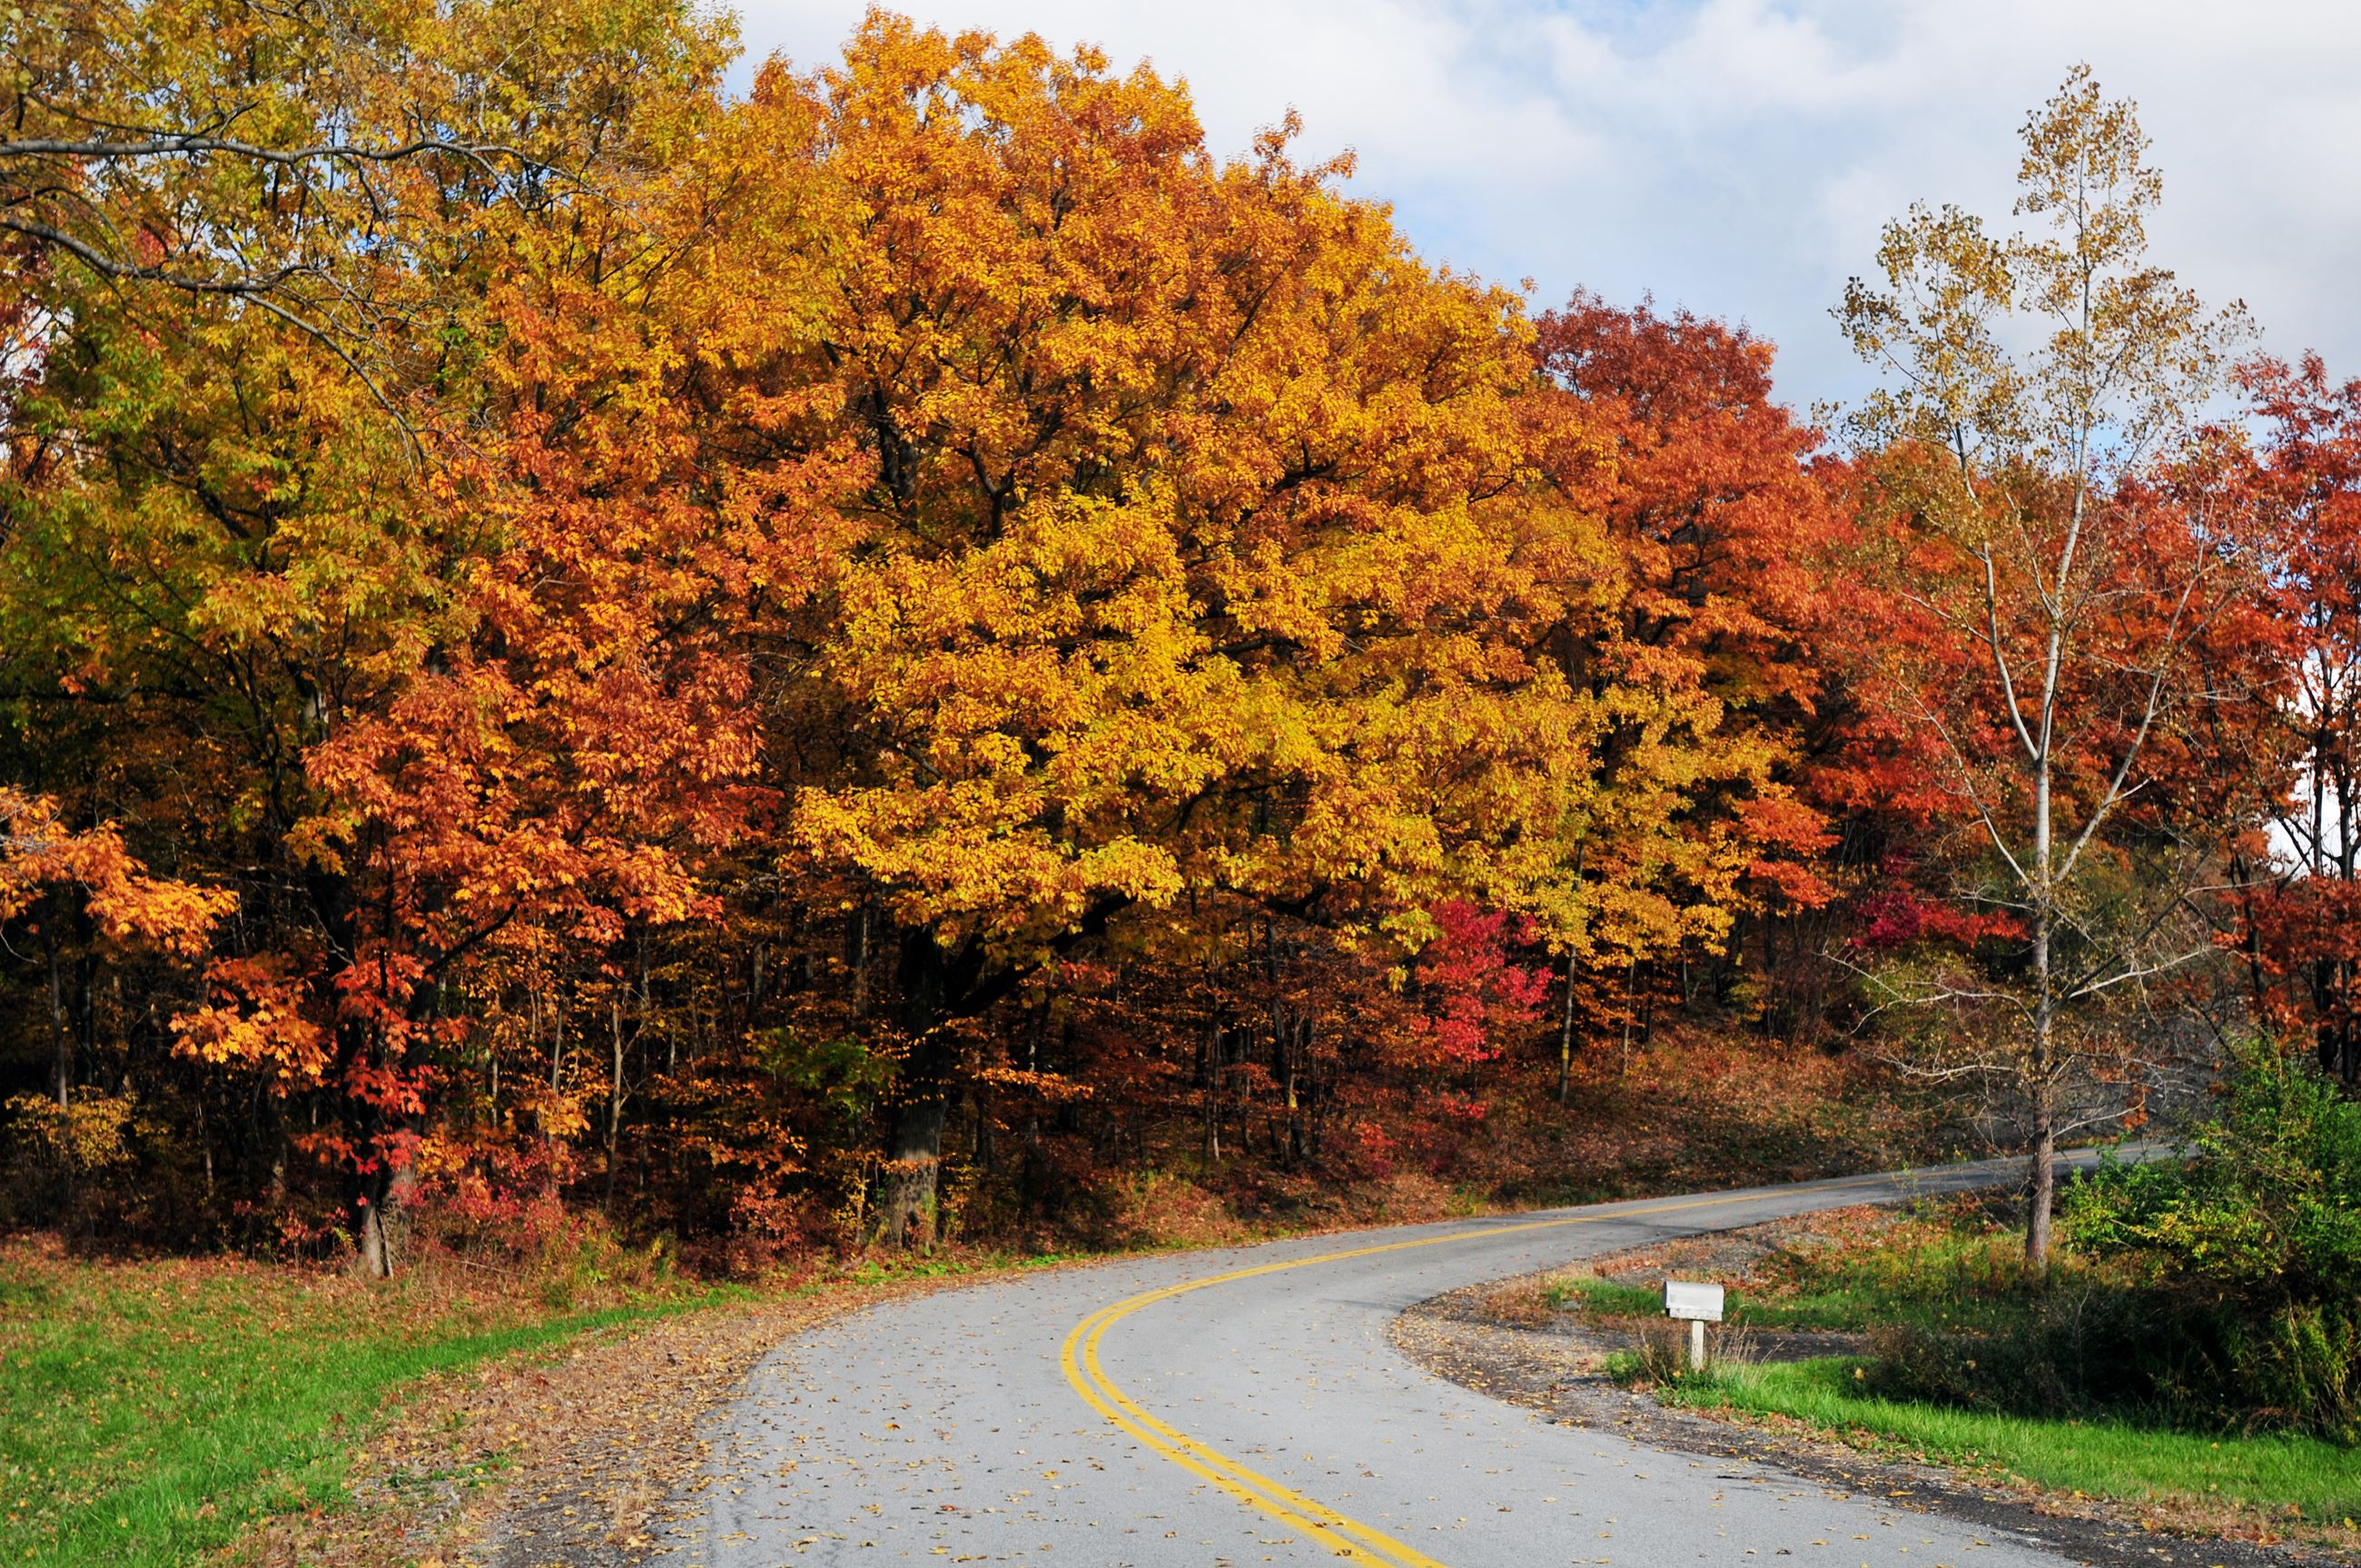 Scenic photo of a curving fall road lined with bright, colorful, crisp fall leaves.